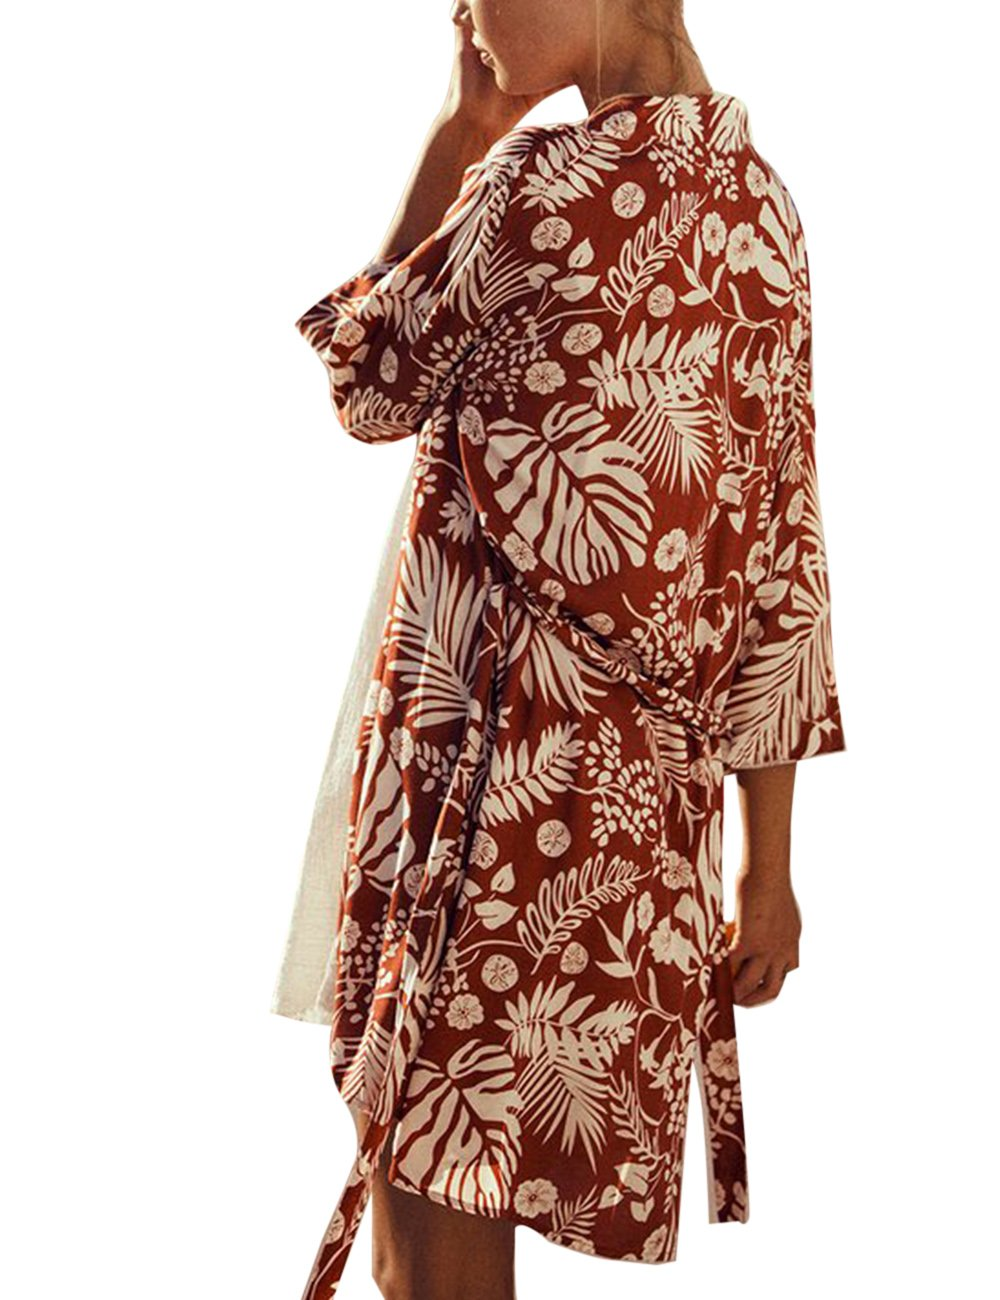 shermie Women's Floral Leaf Print Kimono Cardigan Cover up Swimwear with Belt Rust Red by shermie (Image #3)